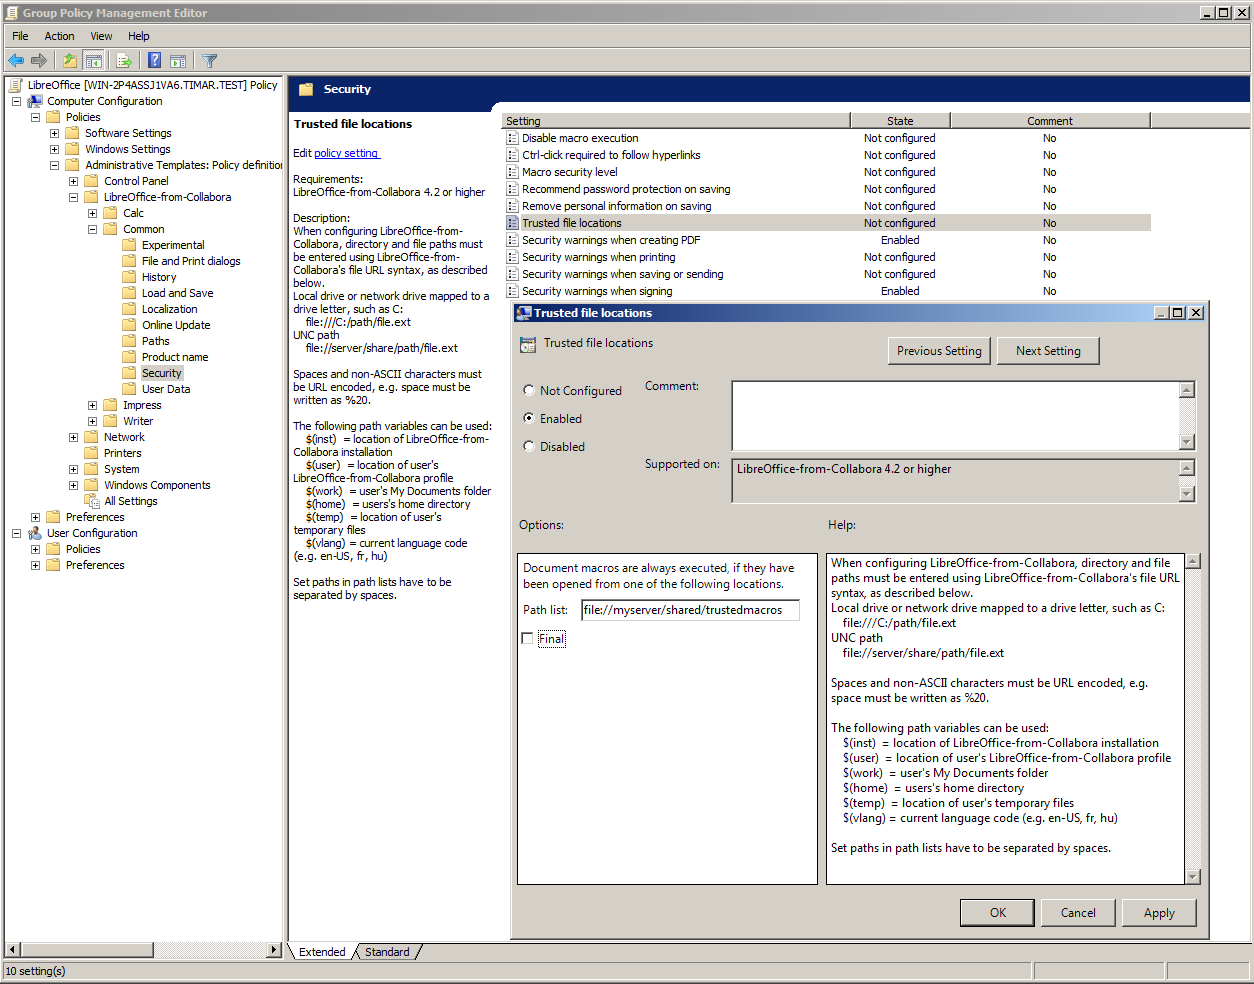 Office Group Policy Templates Windows Configuration Management Using Group Policy ADMX Files Collabora Productivity